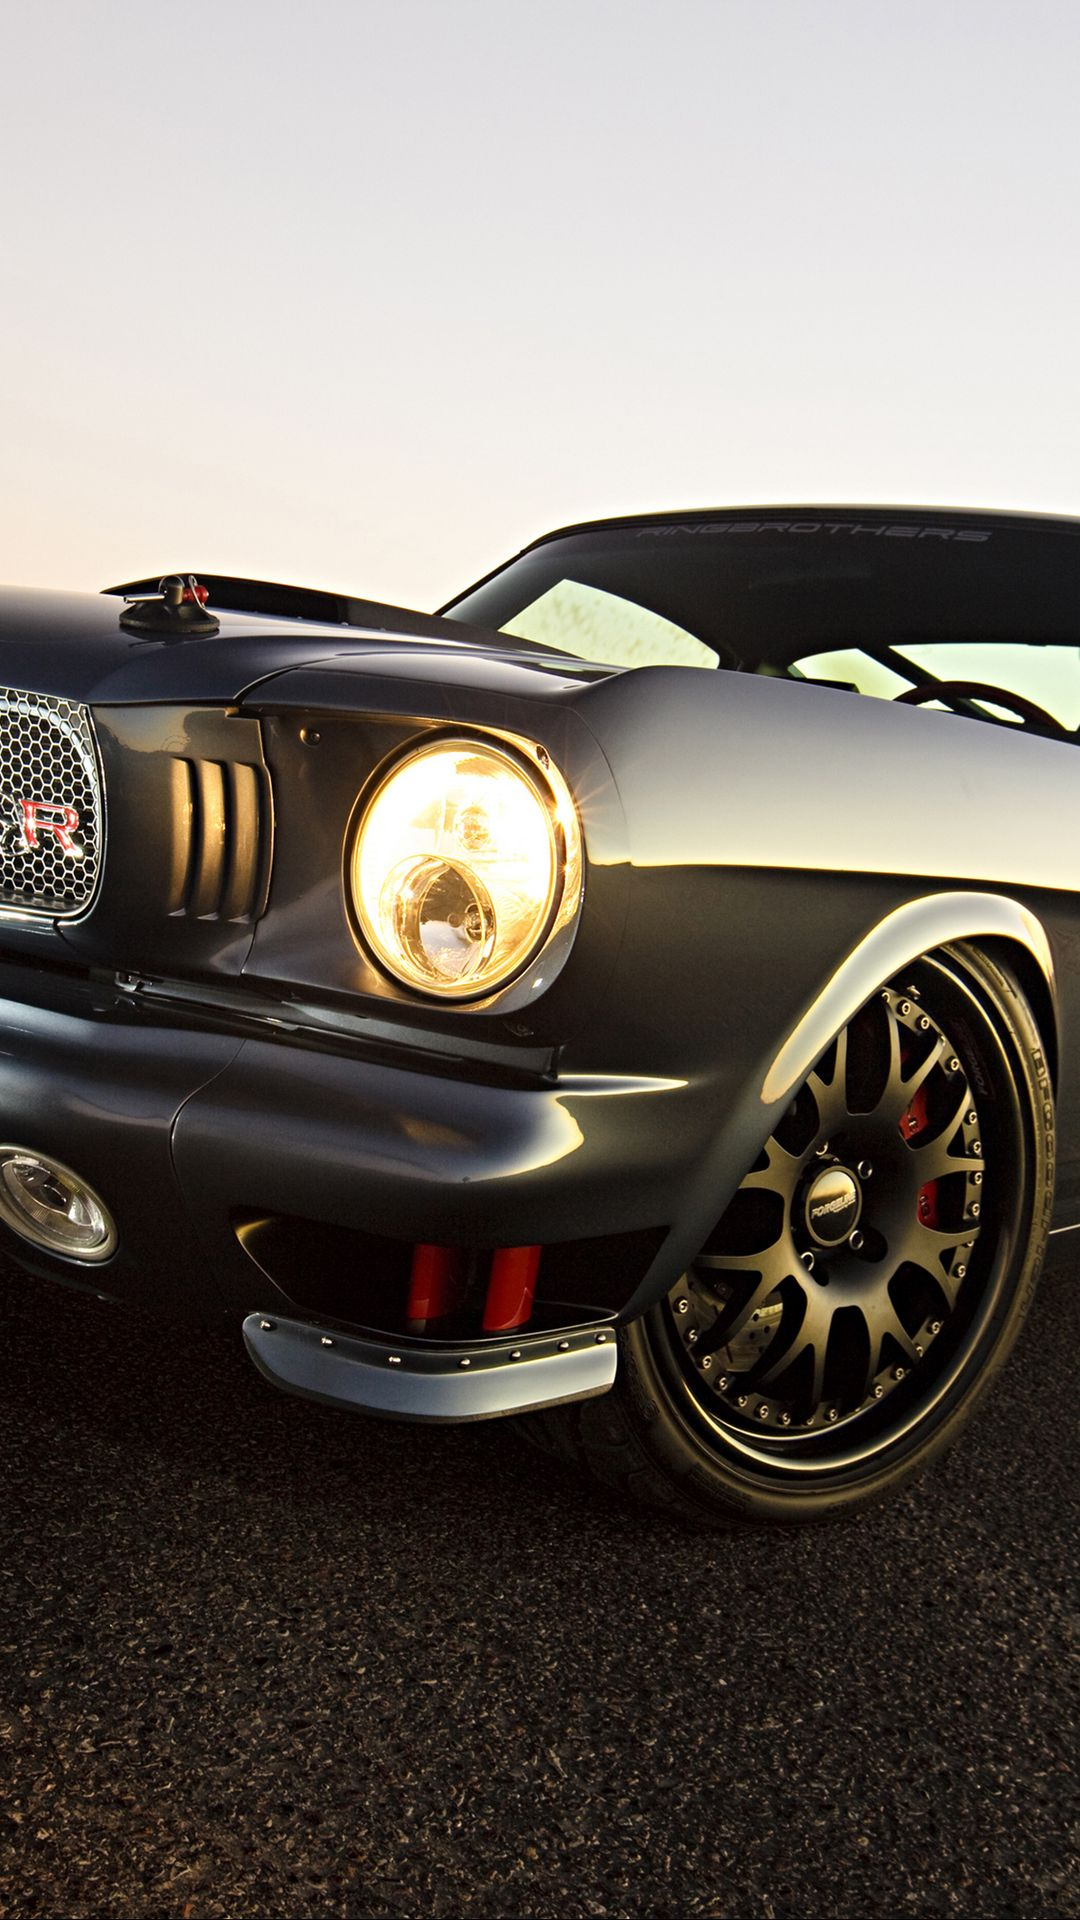 Mustang Ringbrothers Wallpapers Free Download